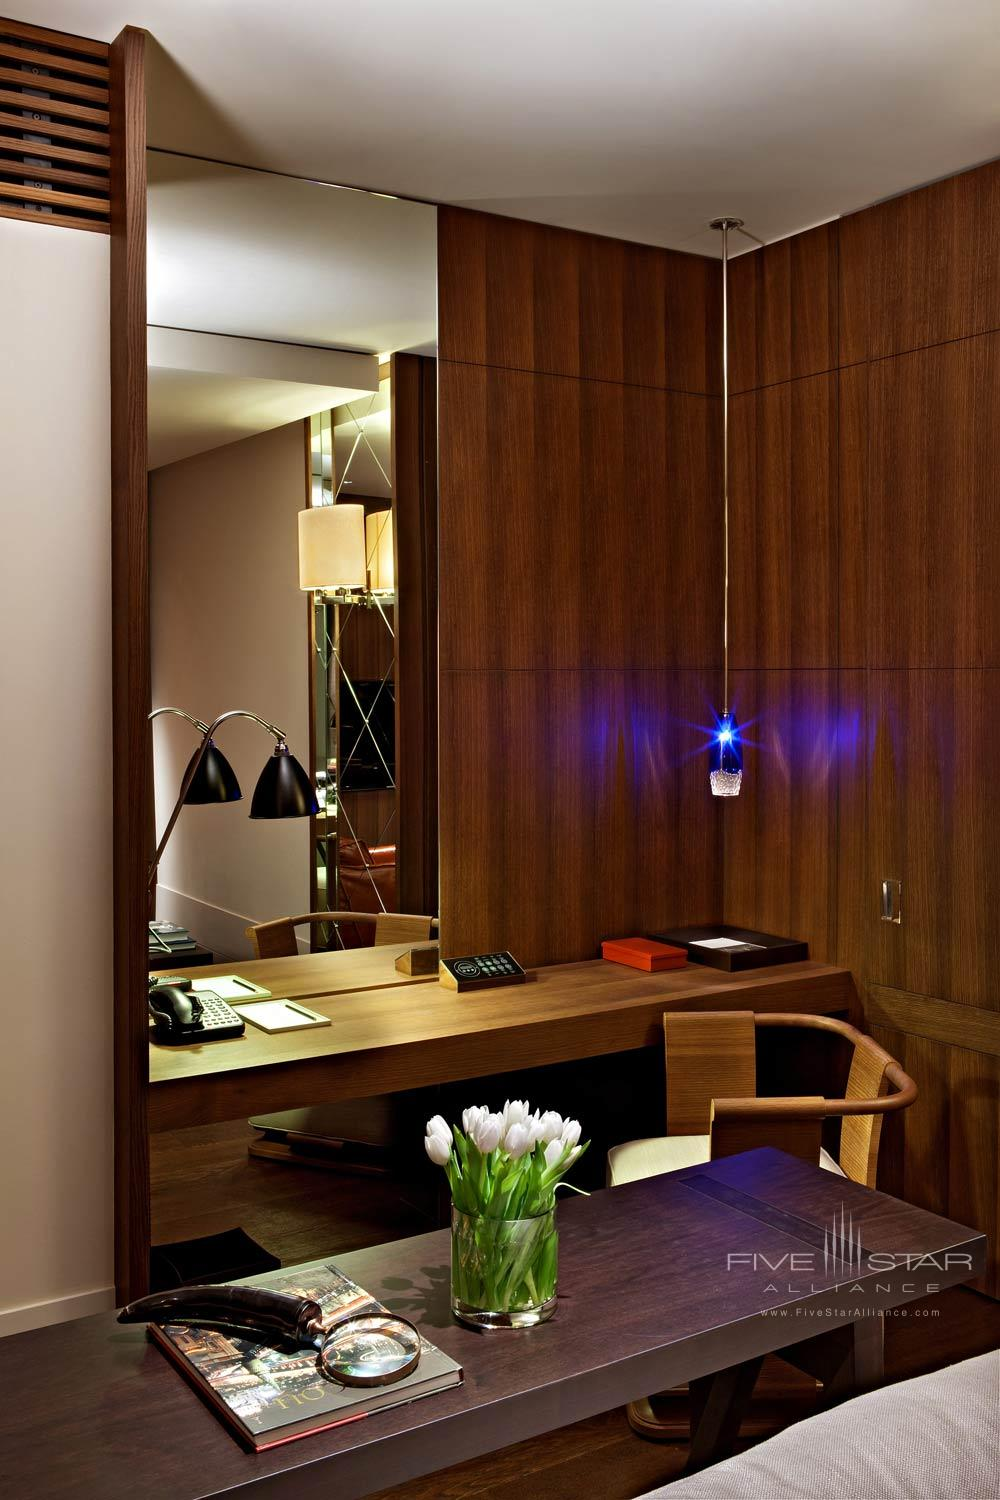 Park Suite at Ararat Park Hyatt Moscow, Moscow, Russia